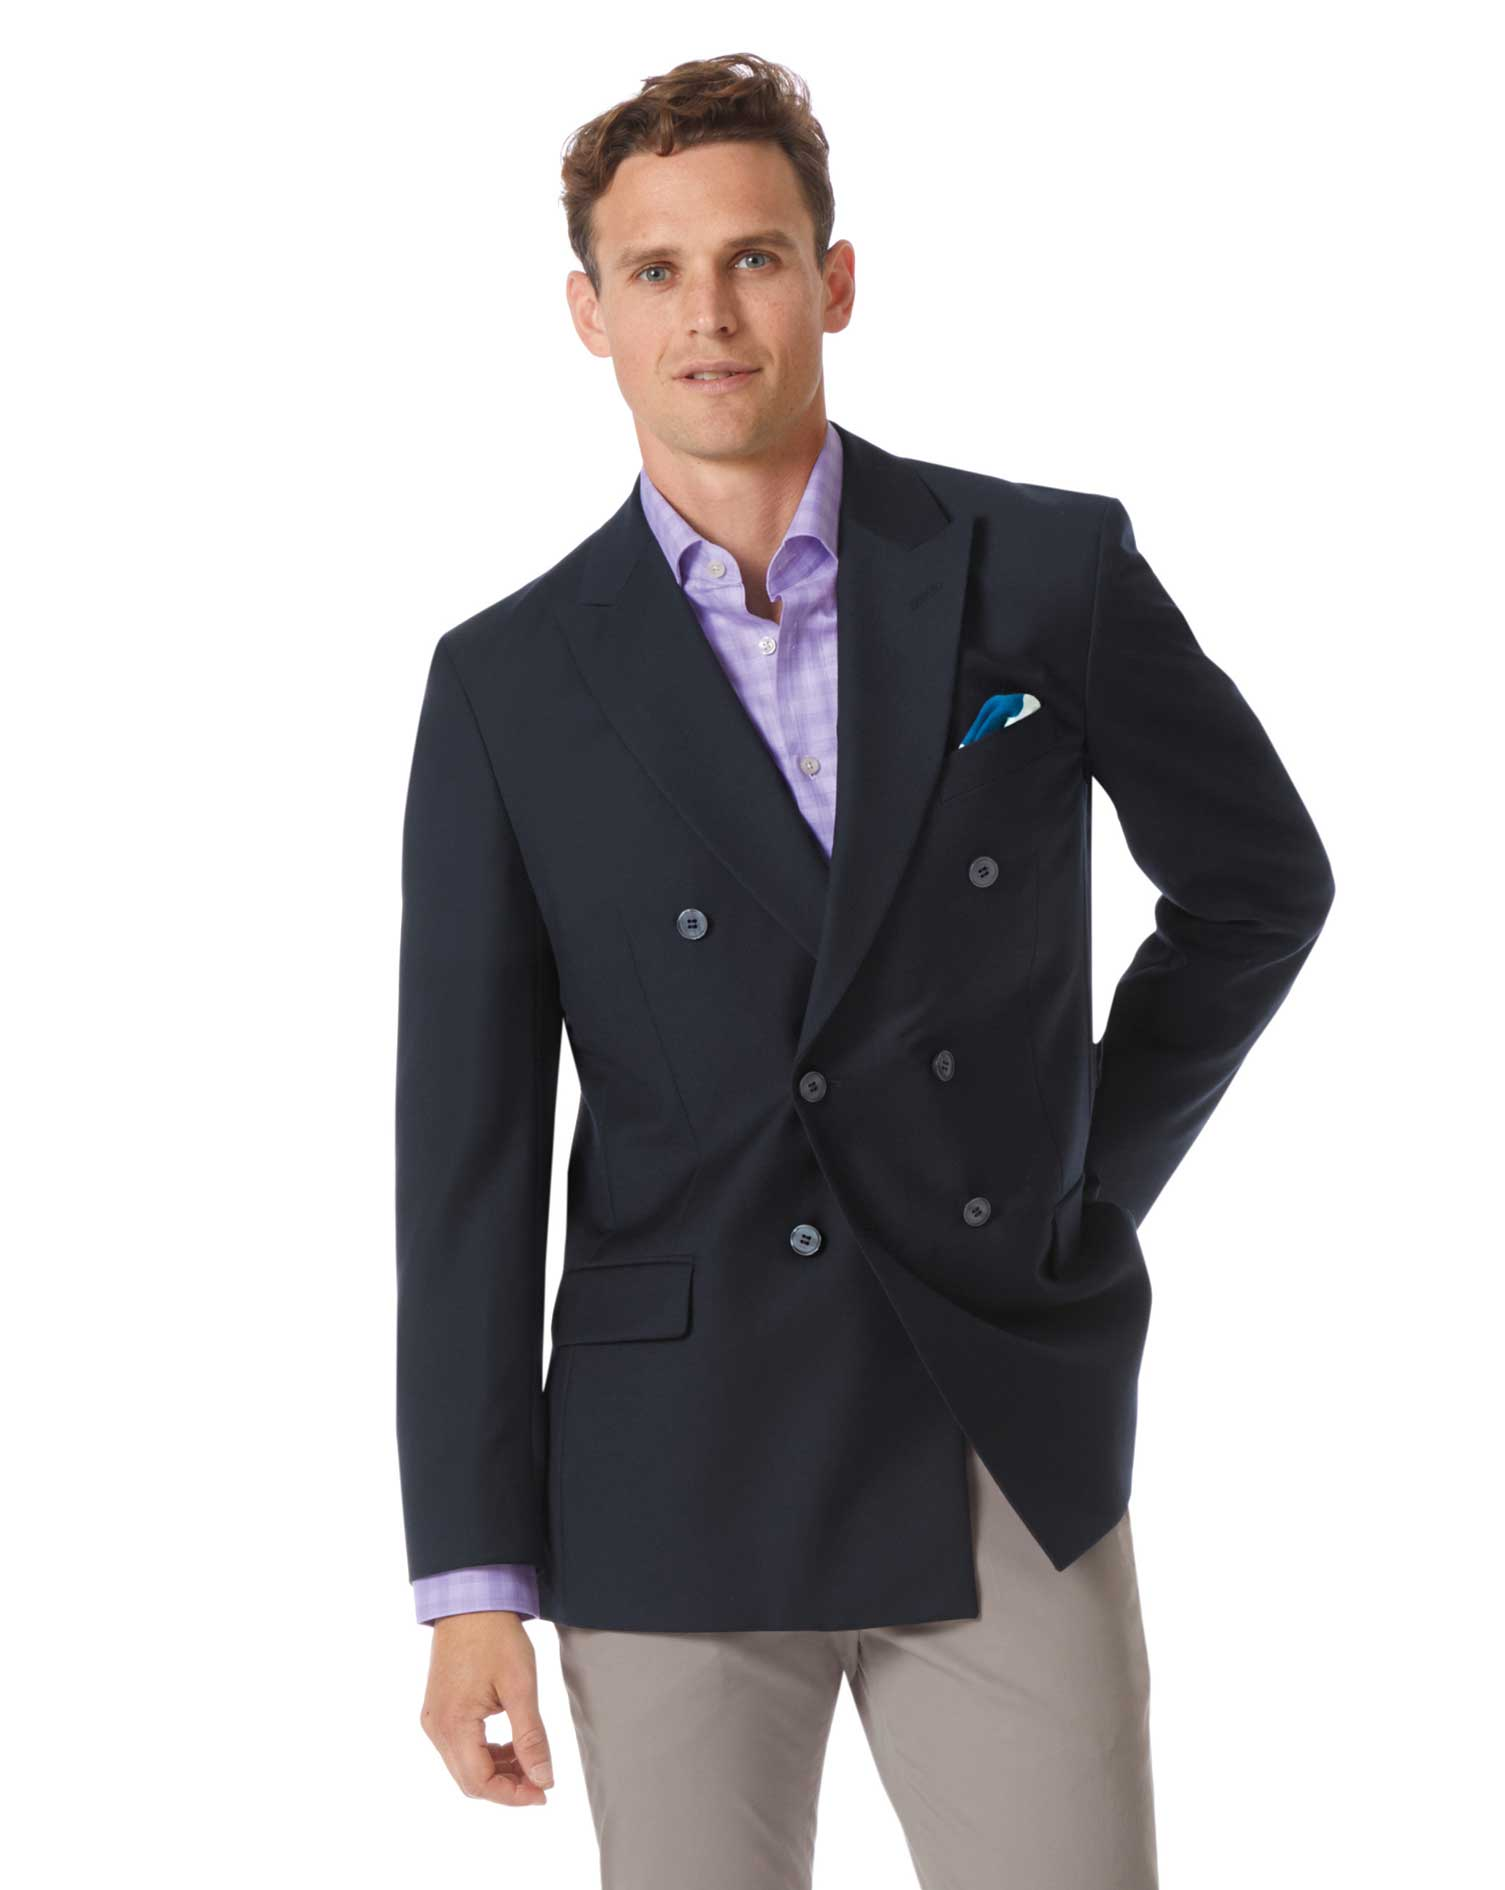 Classic Fit Navy Double Breasted Wool Perfect Wool Blazer Size 38 Regular by Charles Tyrwhitt